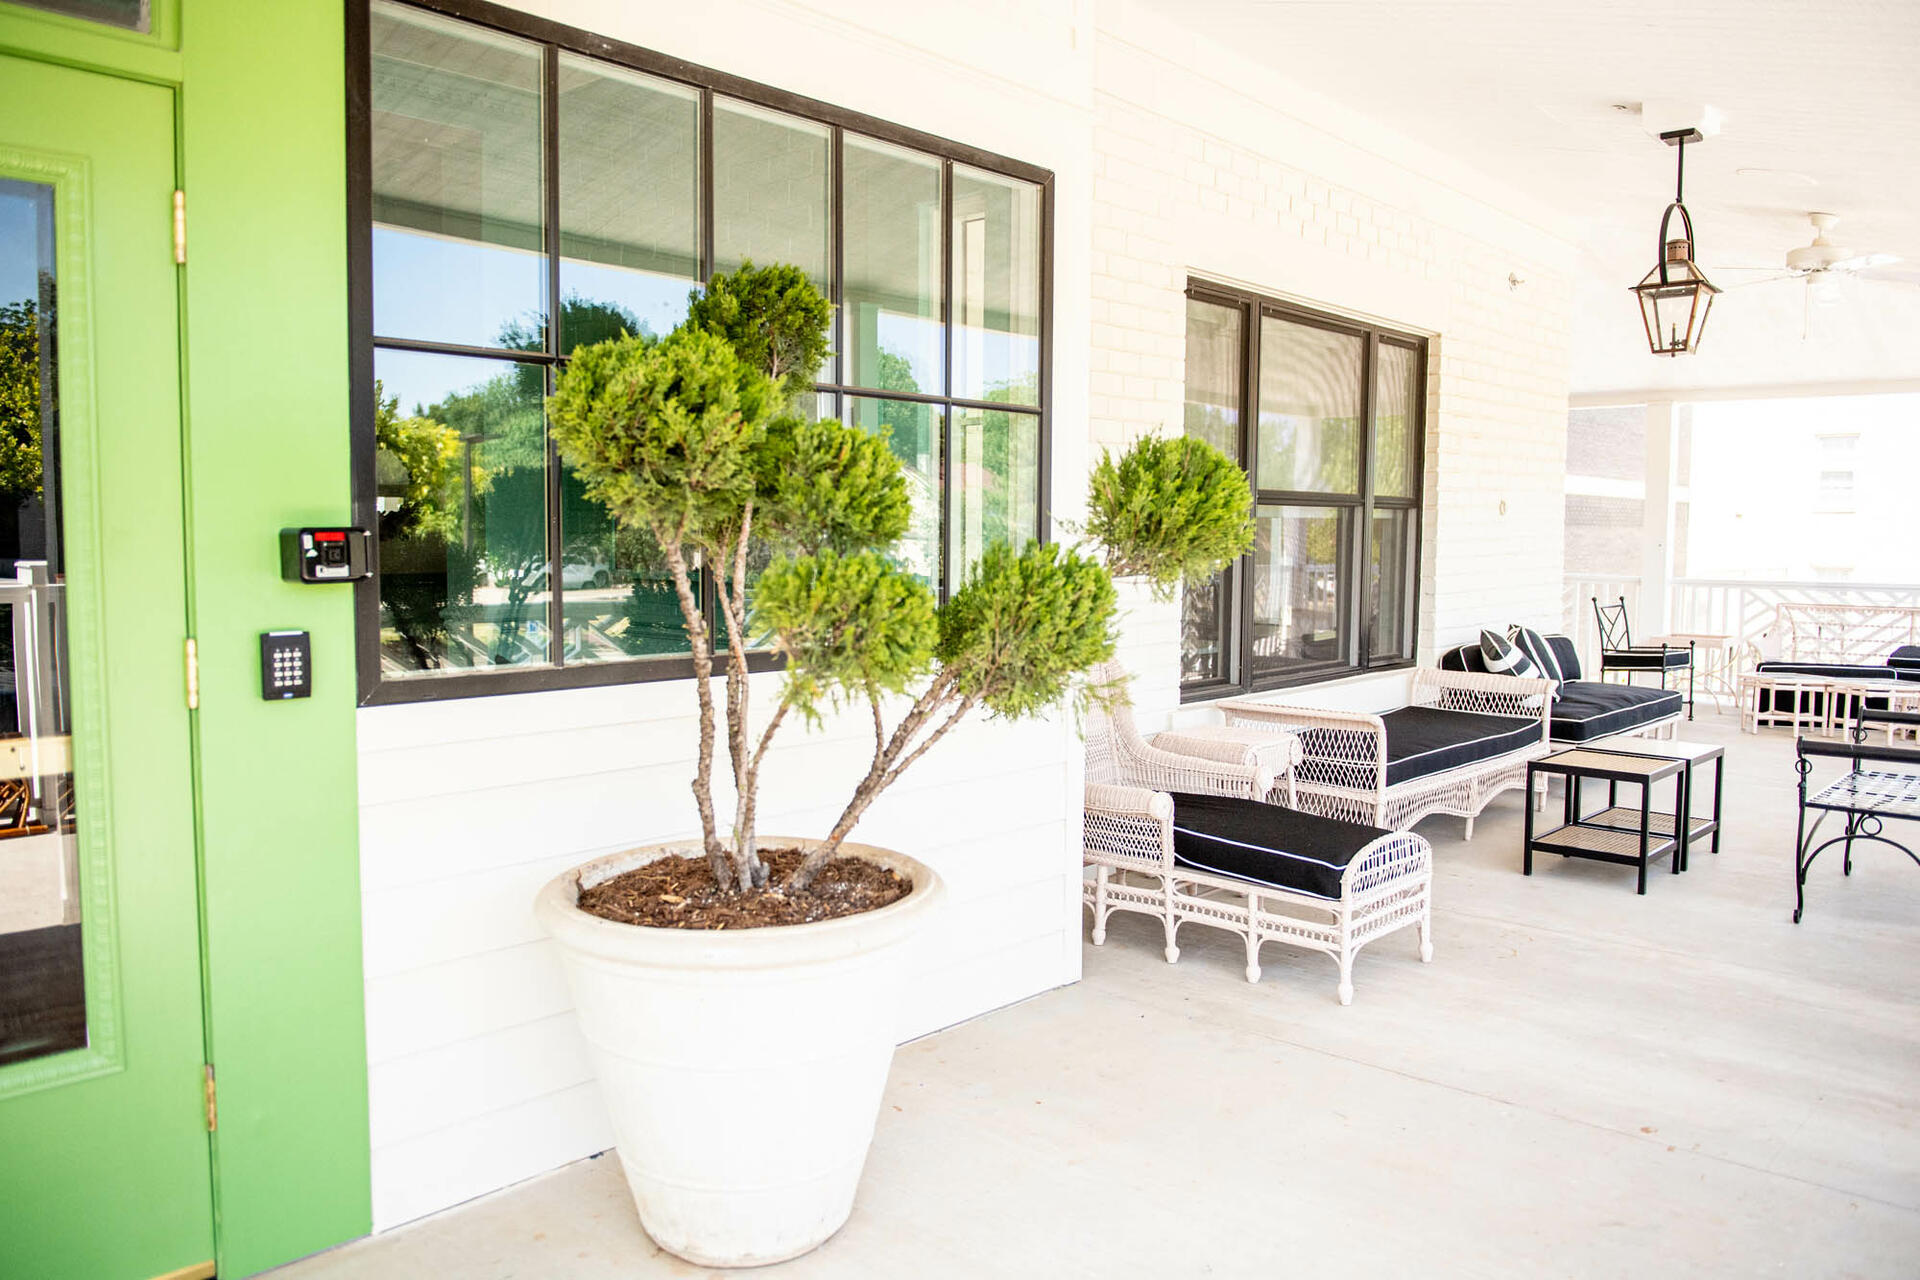 outdoor patio with chairs and plants